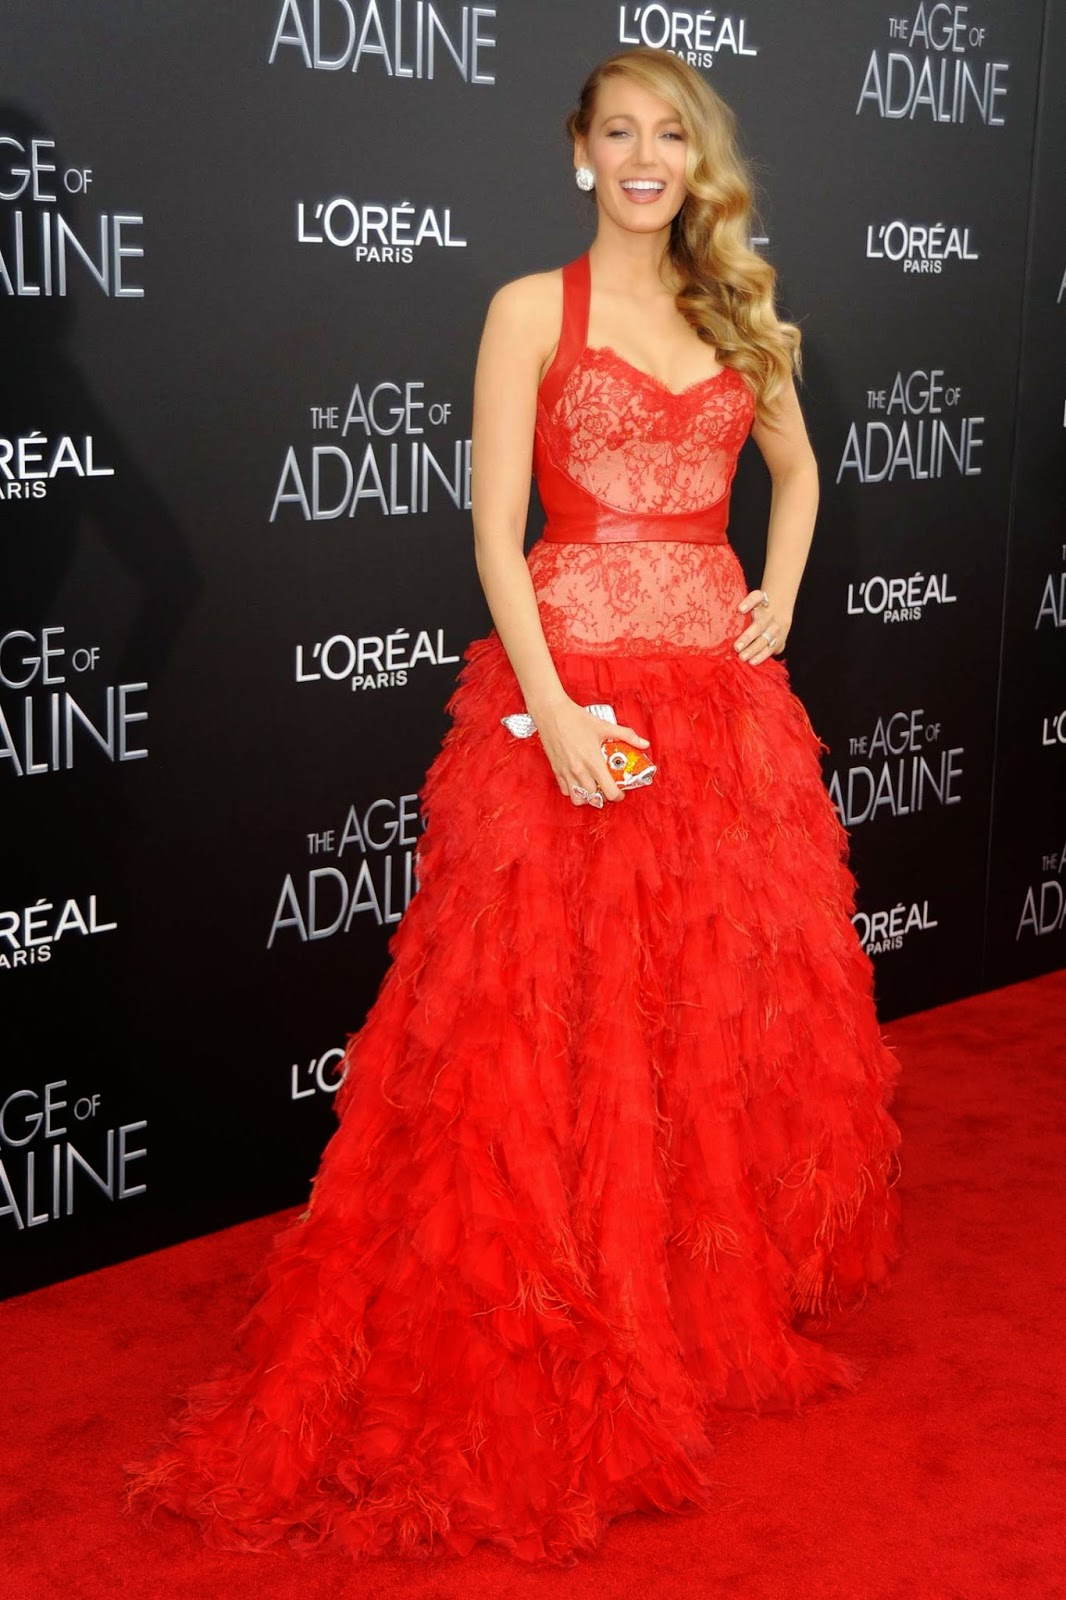 Blake Lively is gorgeous in a red gown at the 'Age of Adaline' NYC Premiere